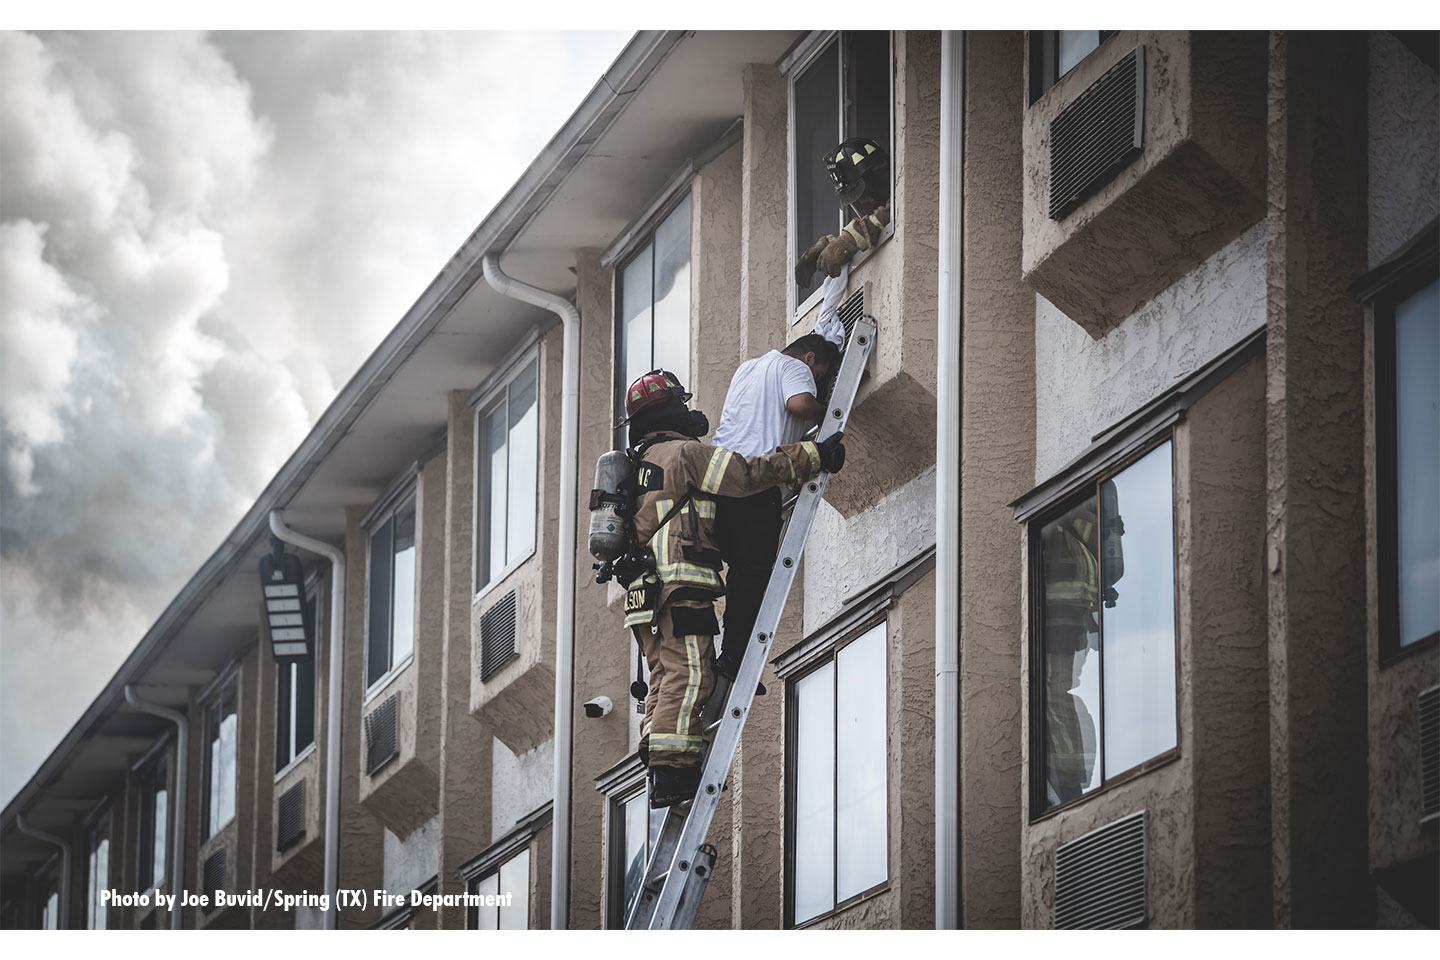 A firefighter assists a victim in a ladder rescue from a window.